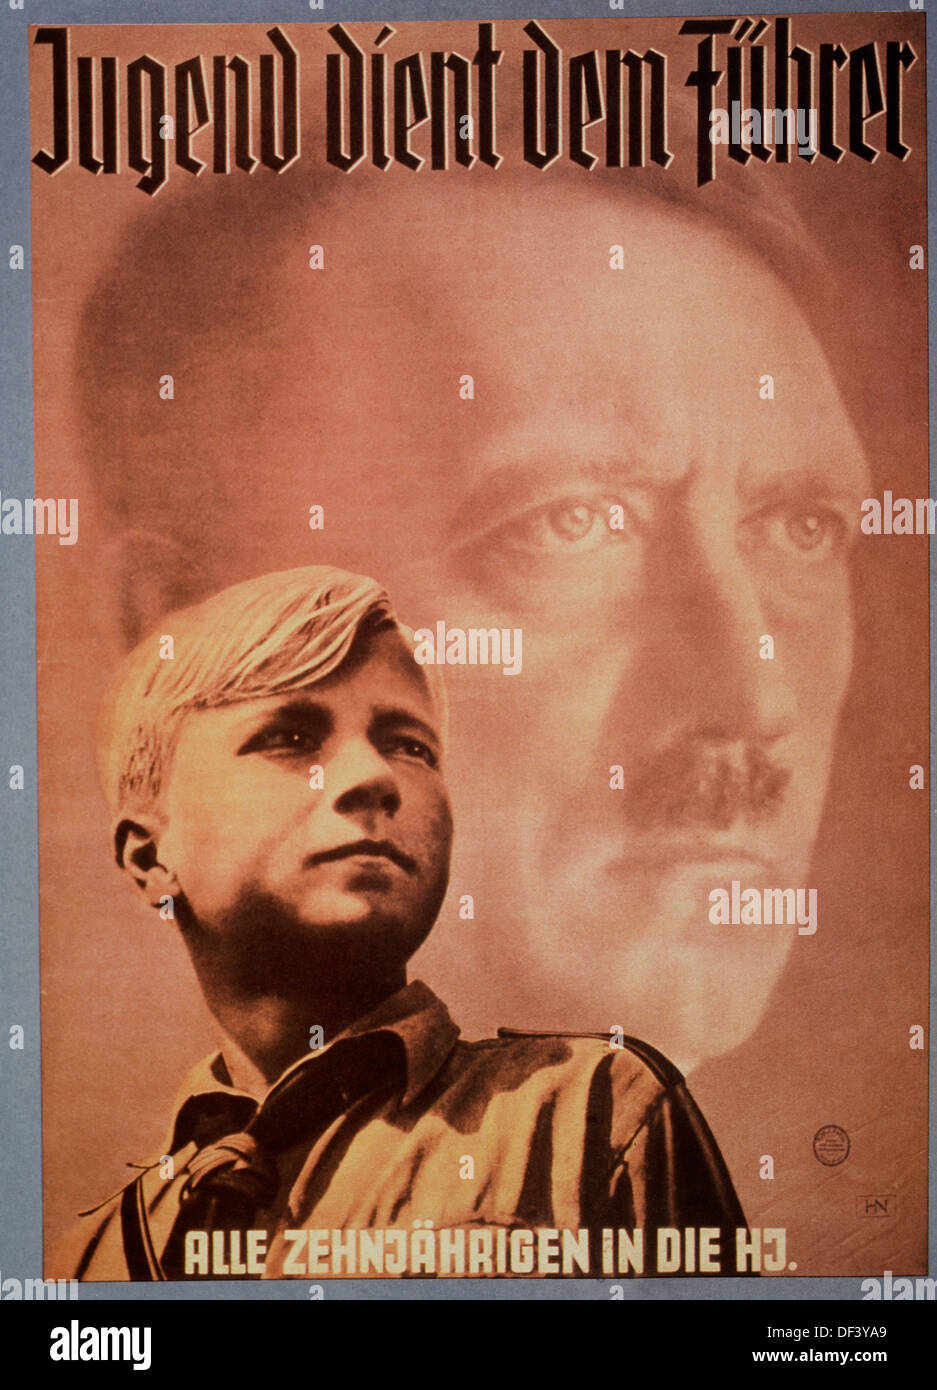 Adolf Hitler and Young Boy, Nazi Youth Poster, 'Youth Serves the Fuhrer', Germany, 1939 - Stock Image